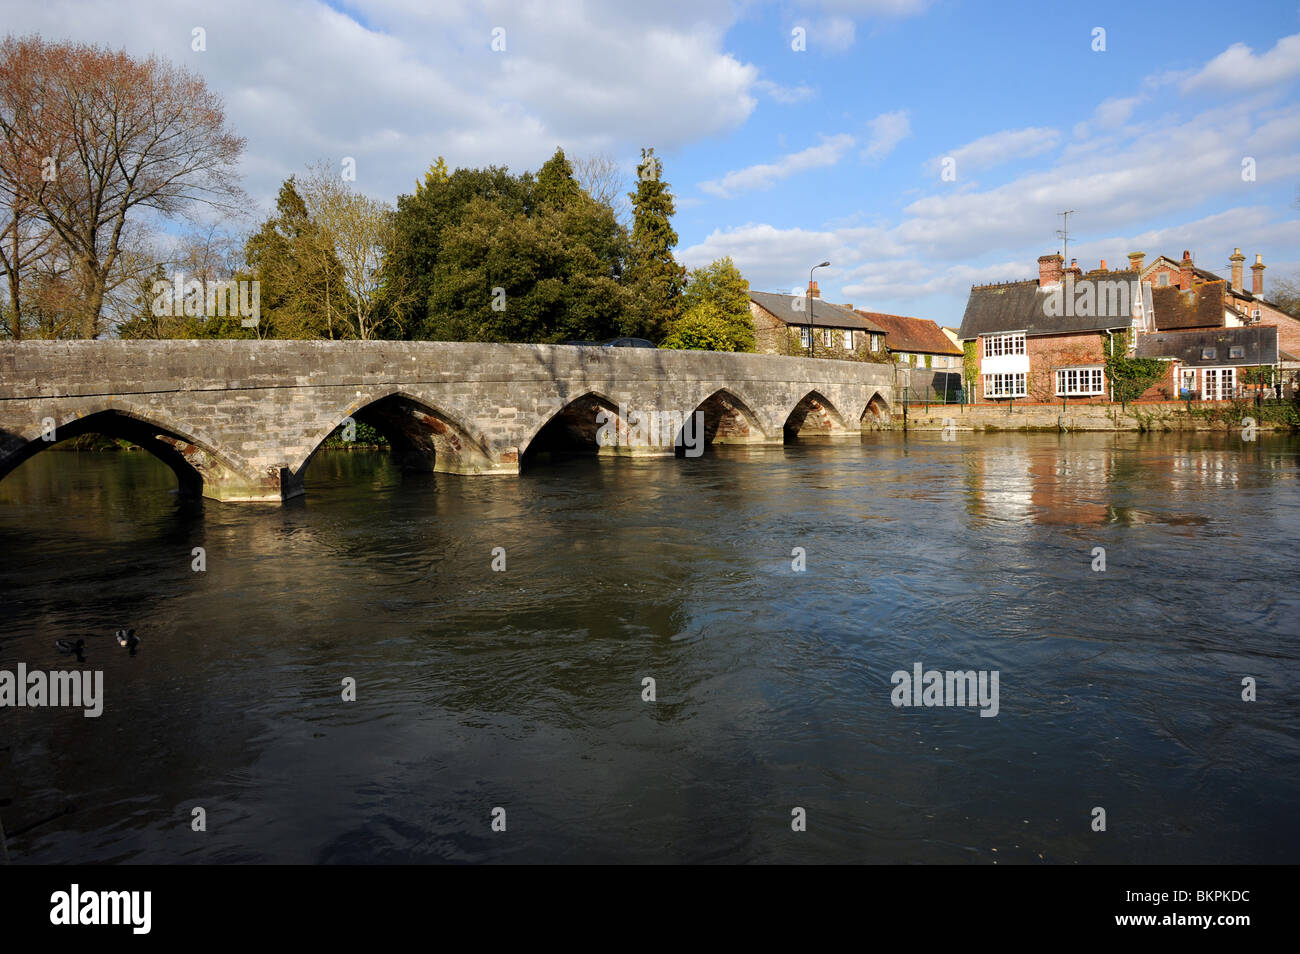 The first great bridge built in medieval times which spans the River Avon at Fordingbridge - Stock Image